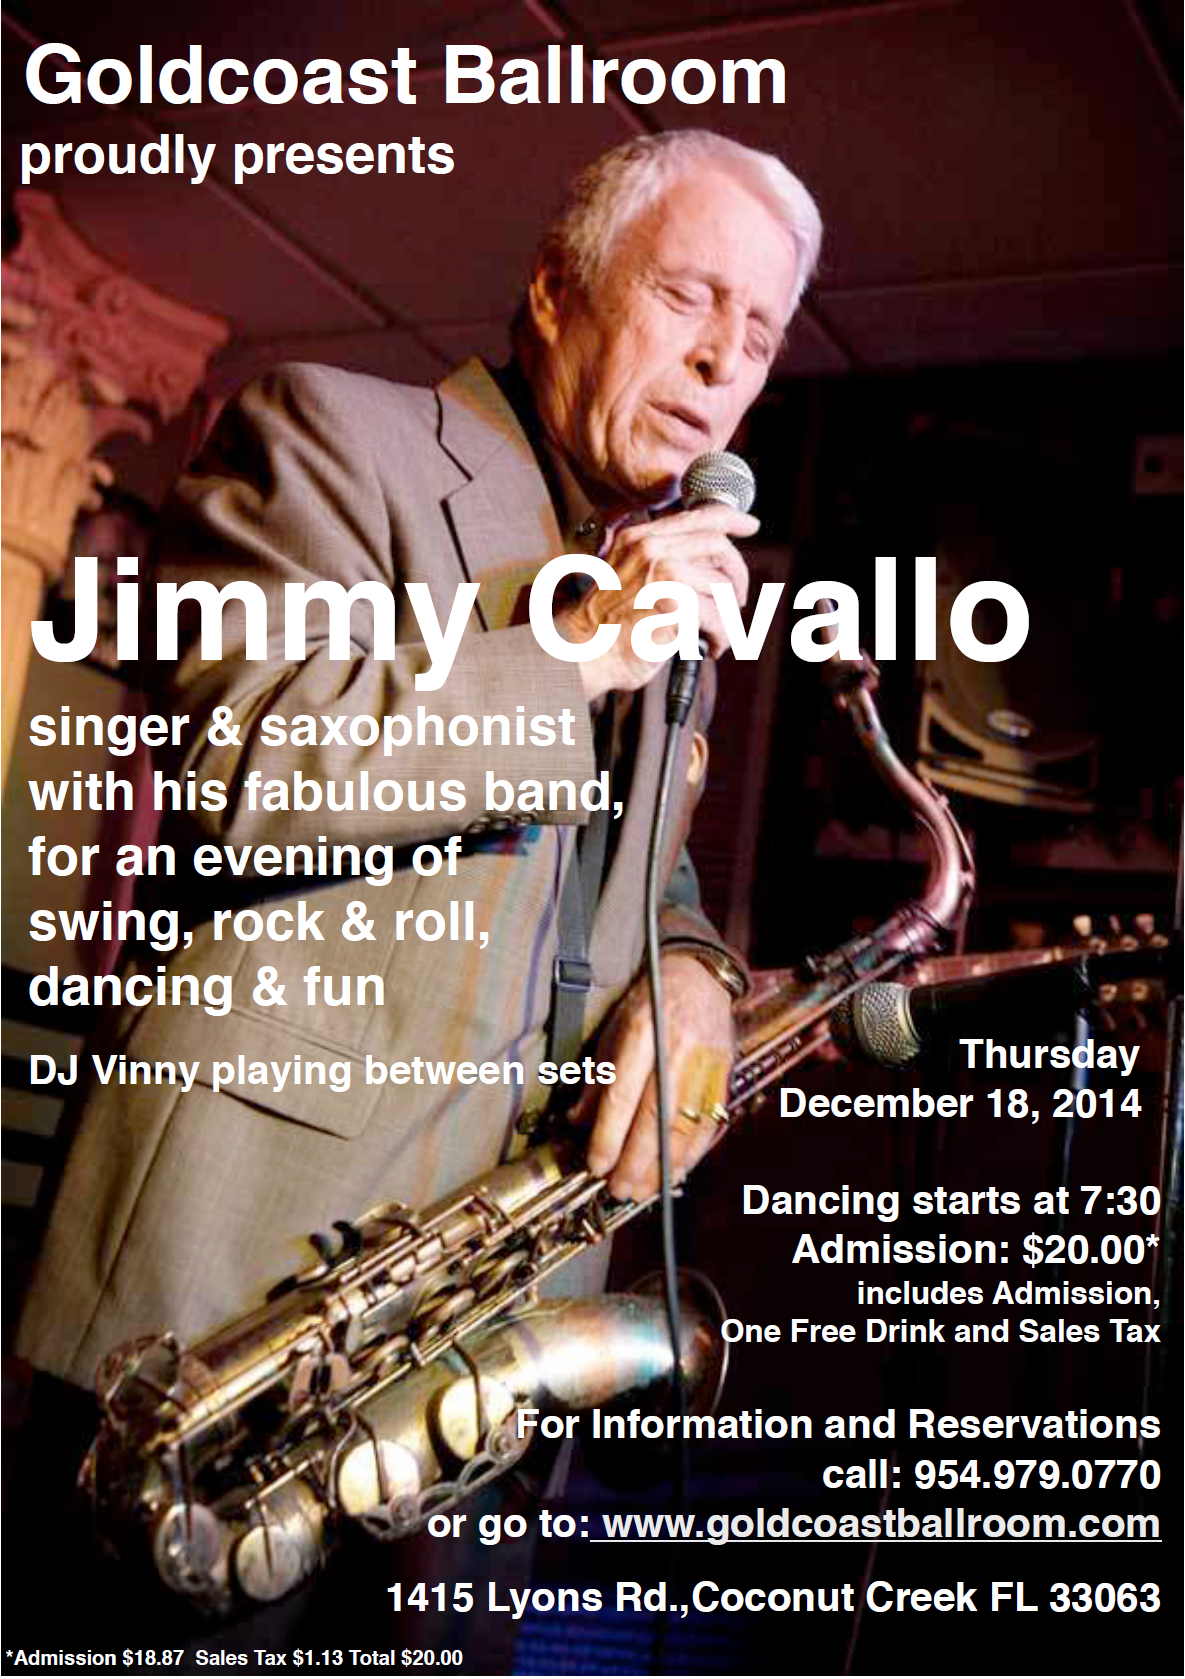 Jimmy Cavallo & His Band Live at Goldcoast Ballroom - December 18, 2014!!